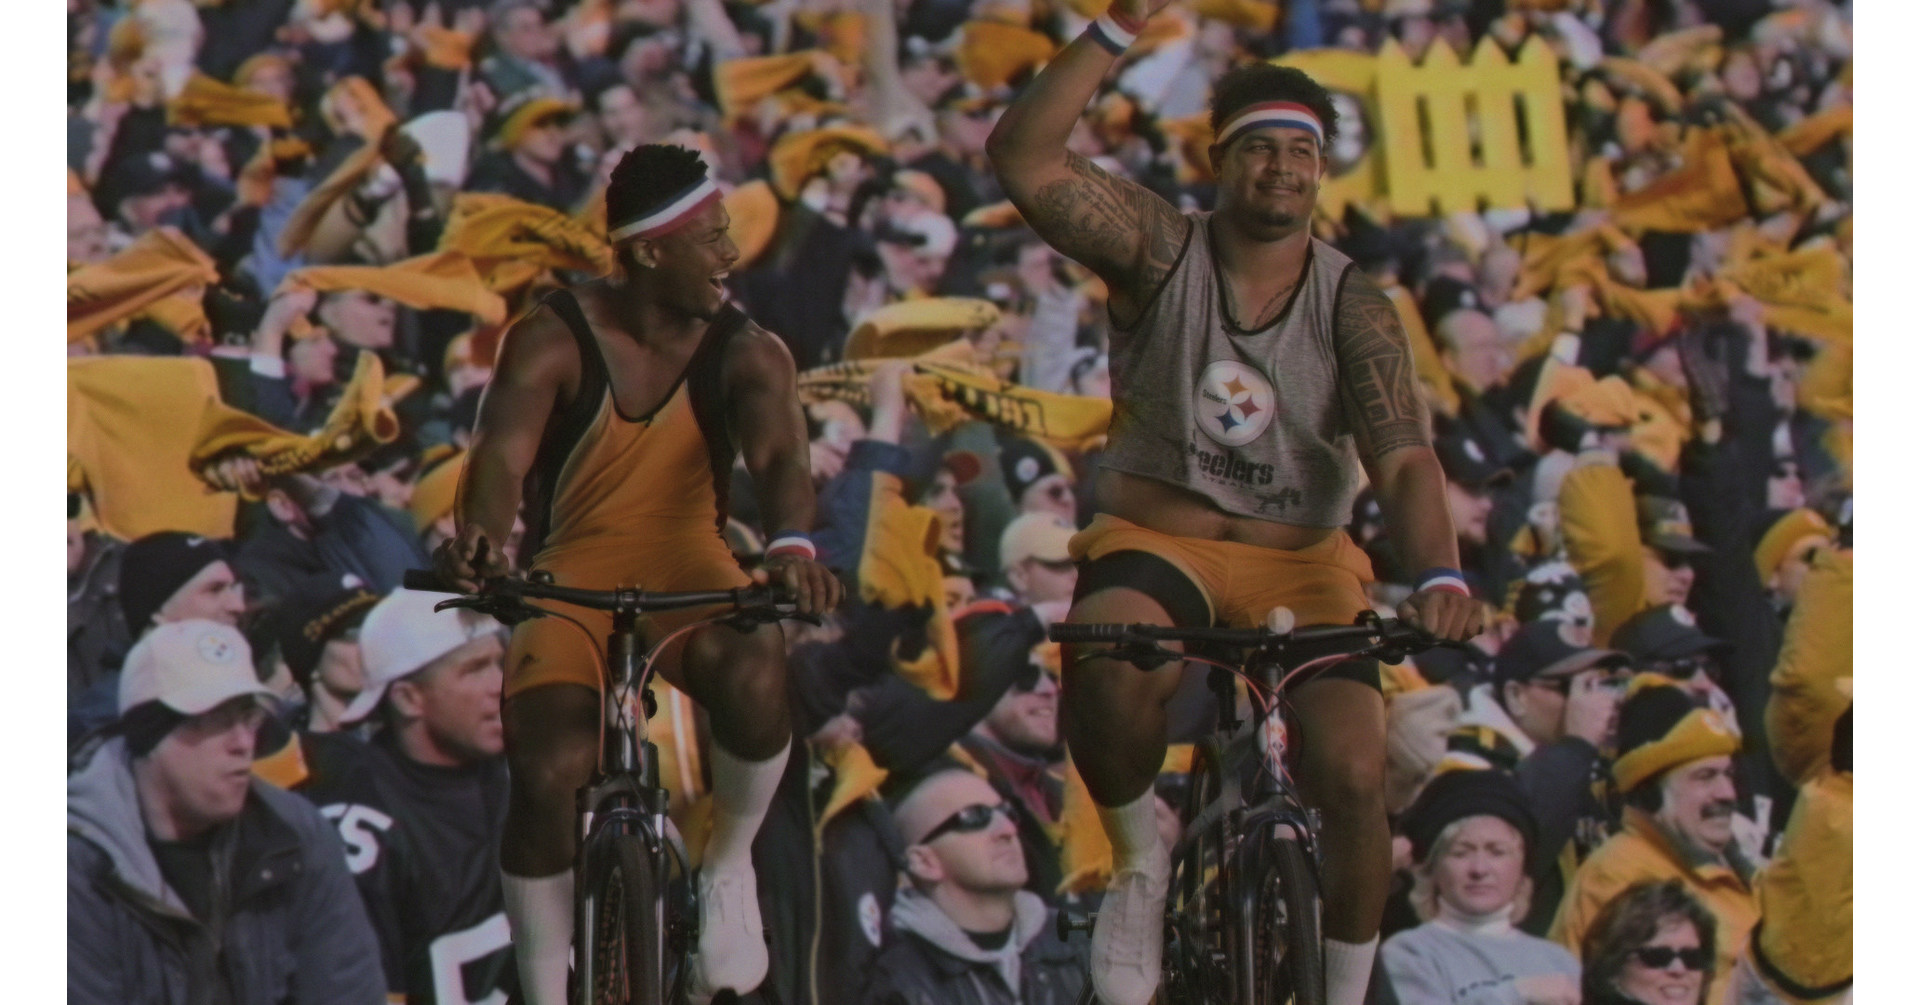 Pedal To The Metal? More Like Pedal To The Field: Pepsi® And Juju Smith-schuster Go For A Ride At Heinz photo